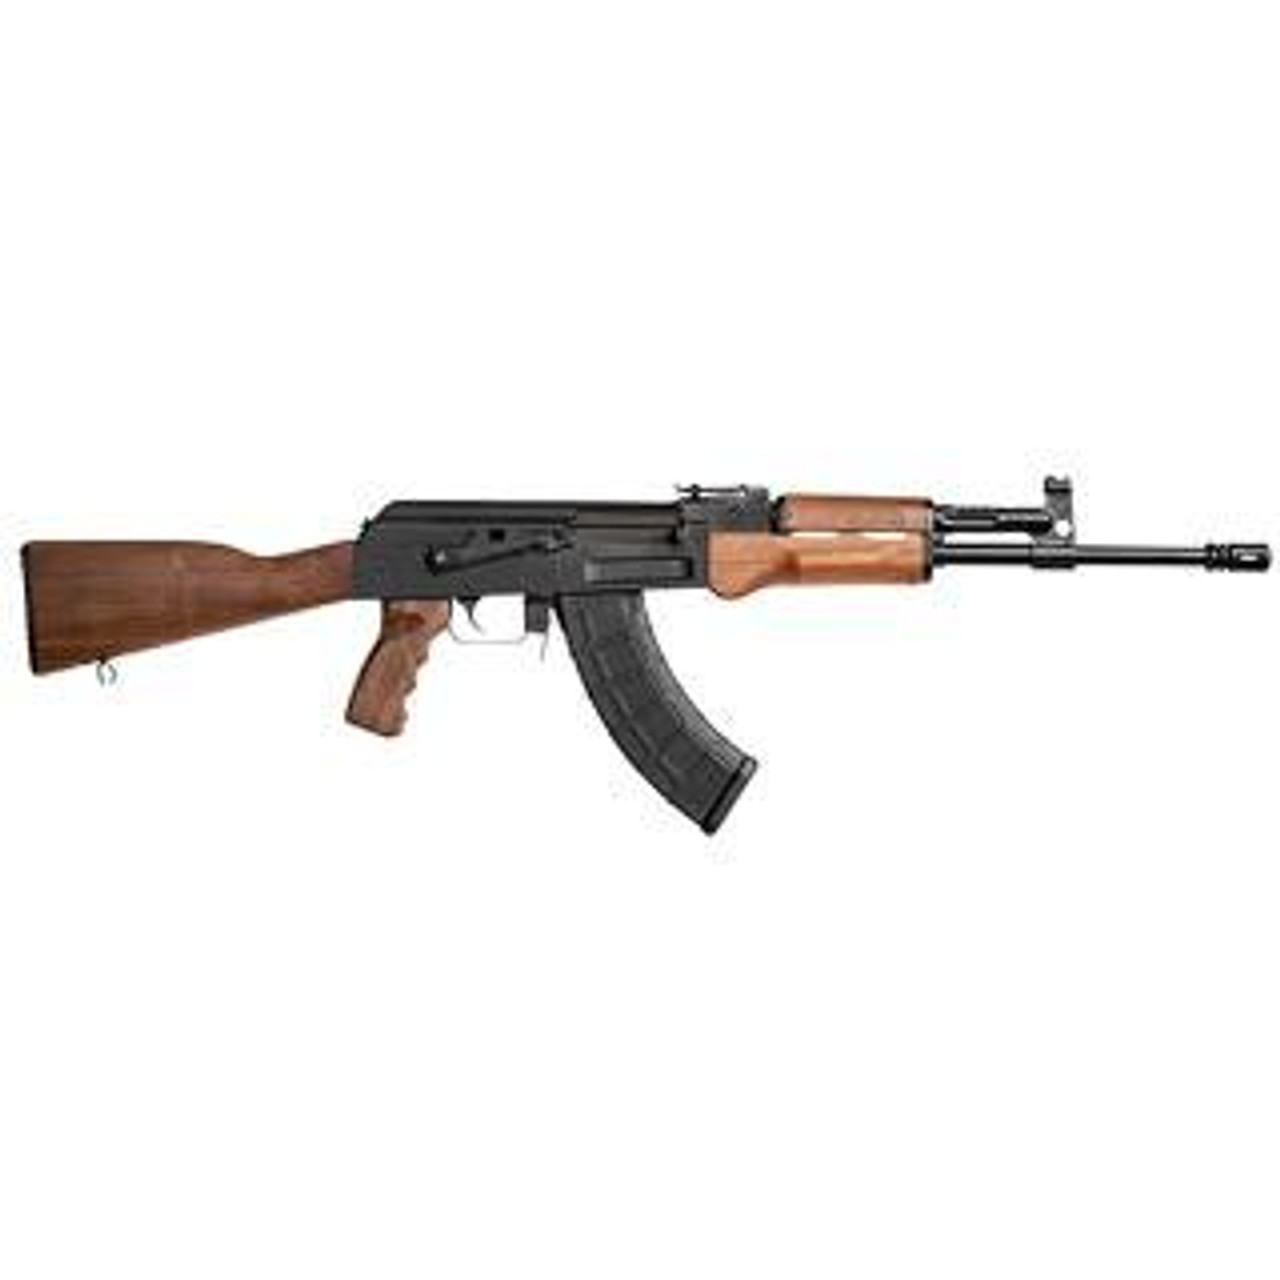 Century Arms C39v2 Tactical CALIFORNIA LEGAL-7.62x39